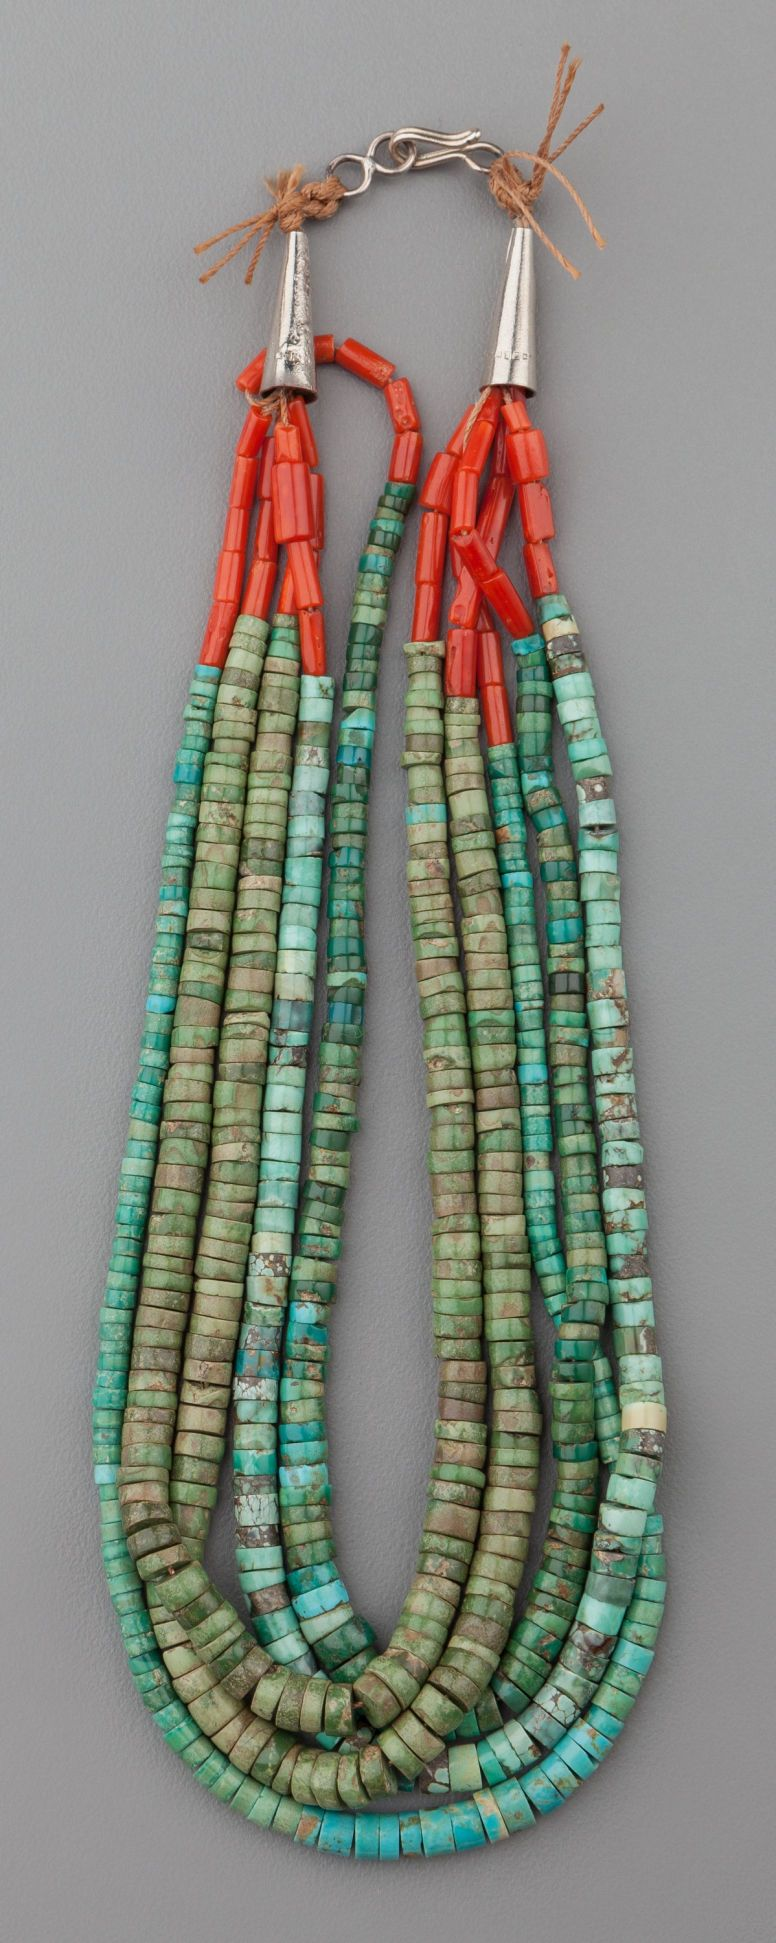 14+ Native american turquoise and coral jewelry ideas